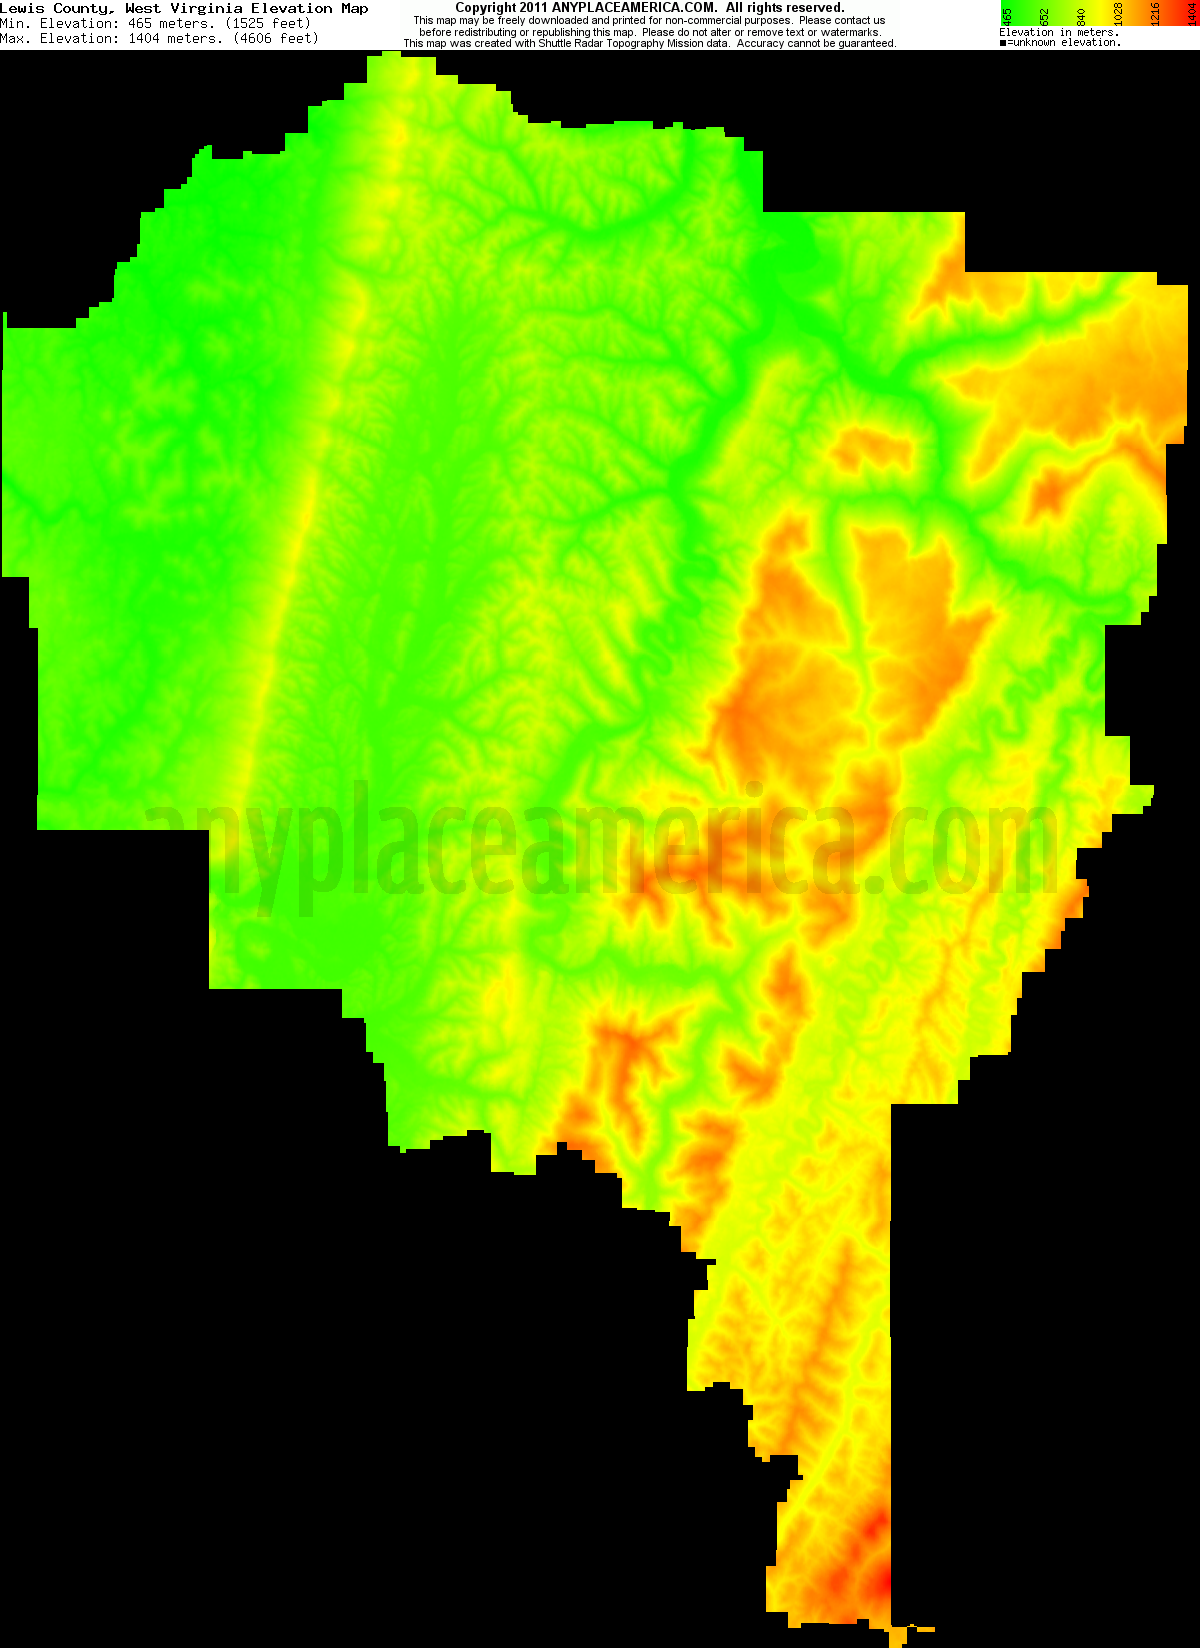 Free Lewis County West Virginia Topo Maps Amp Elevations